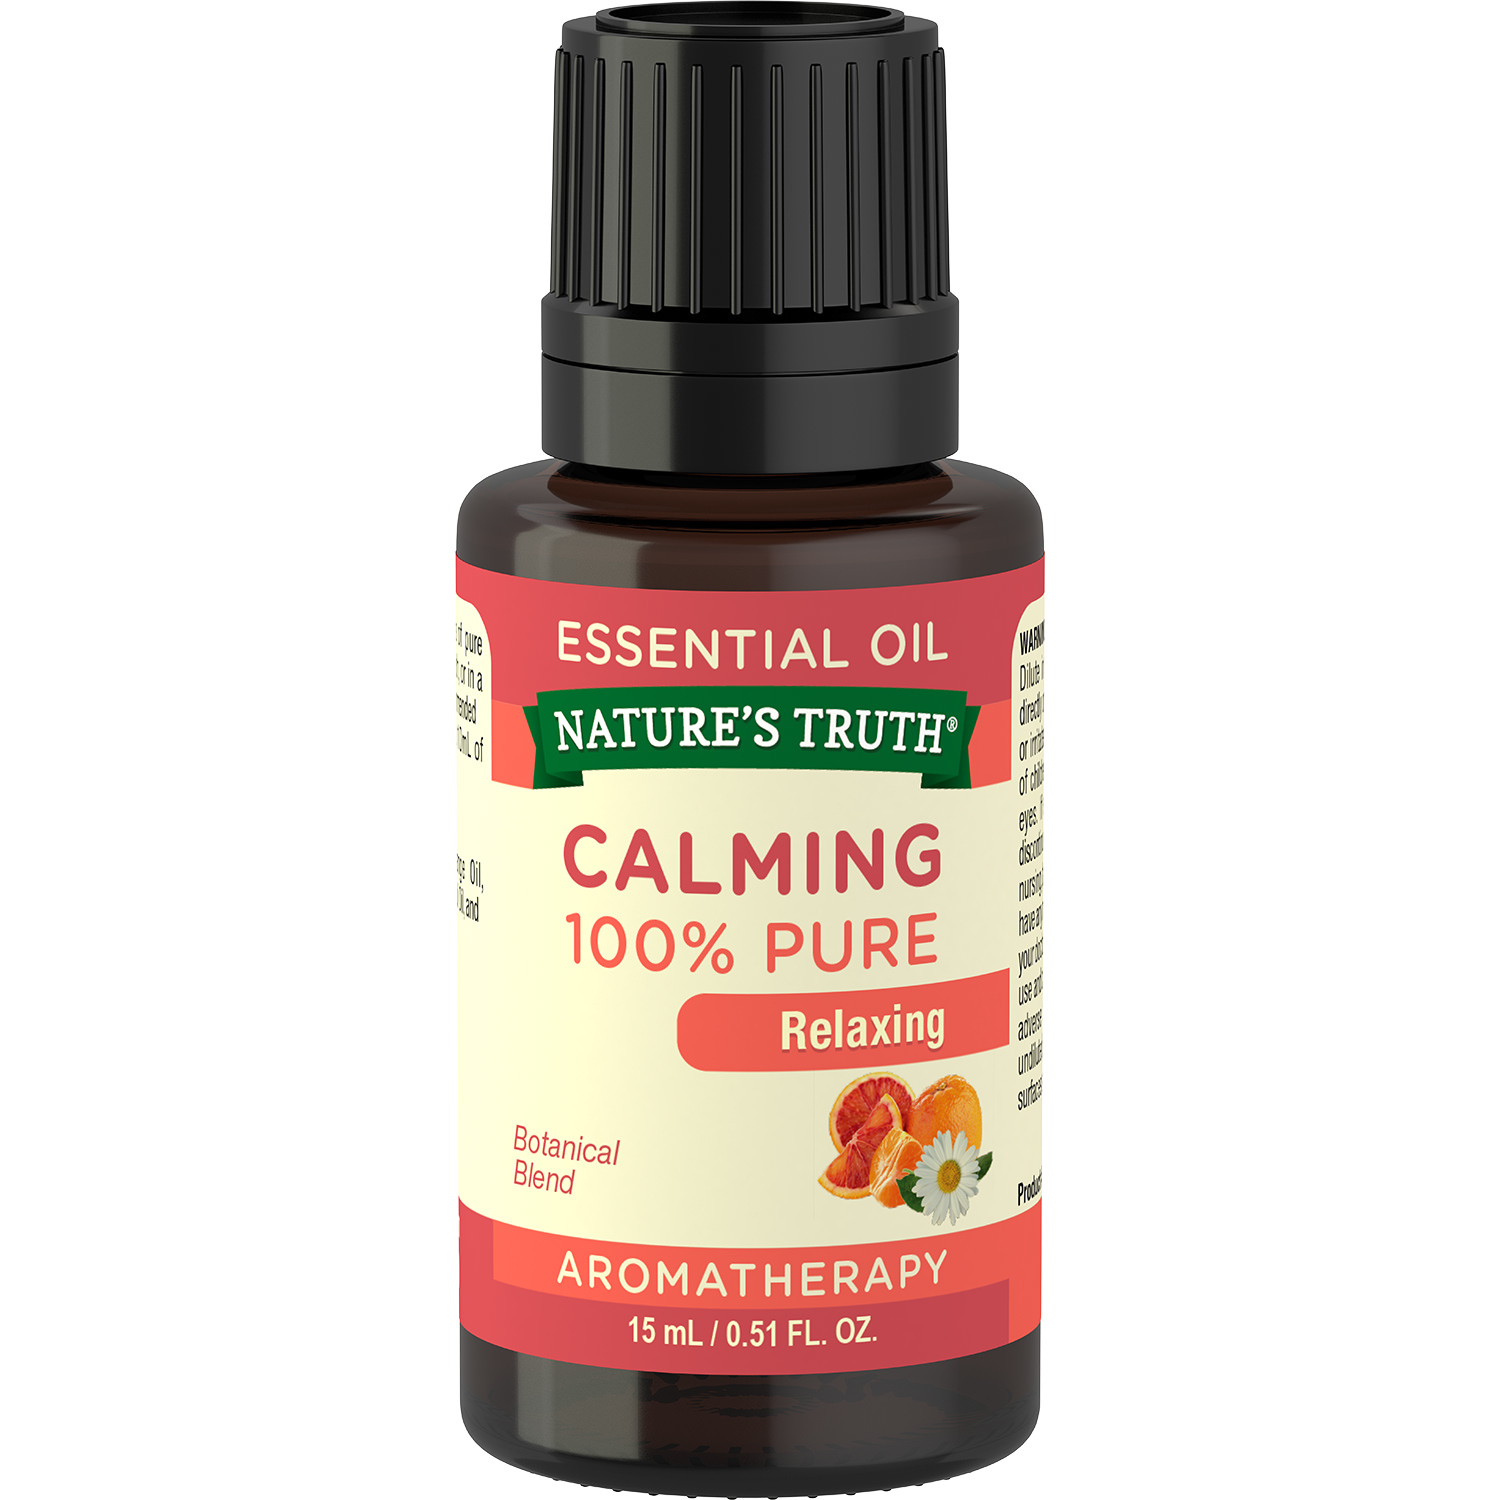 Nature's Truth Aromatherapy Calming 100% Pure Essential Oil, Relaxing, 0.51 Fl Oz